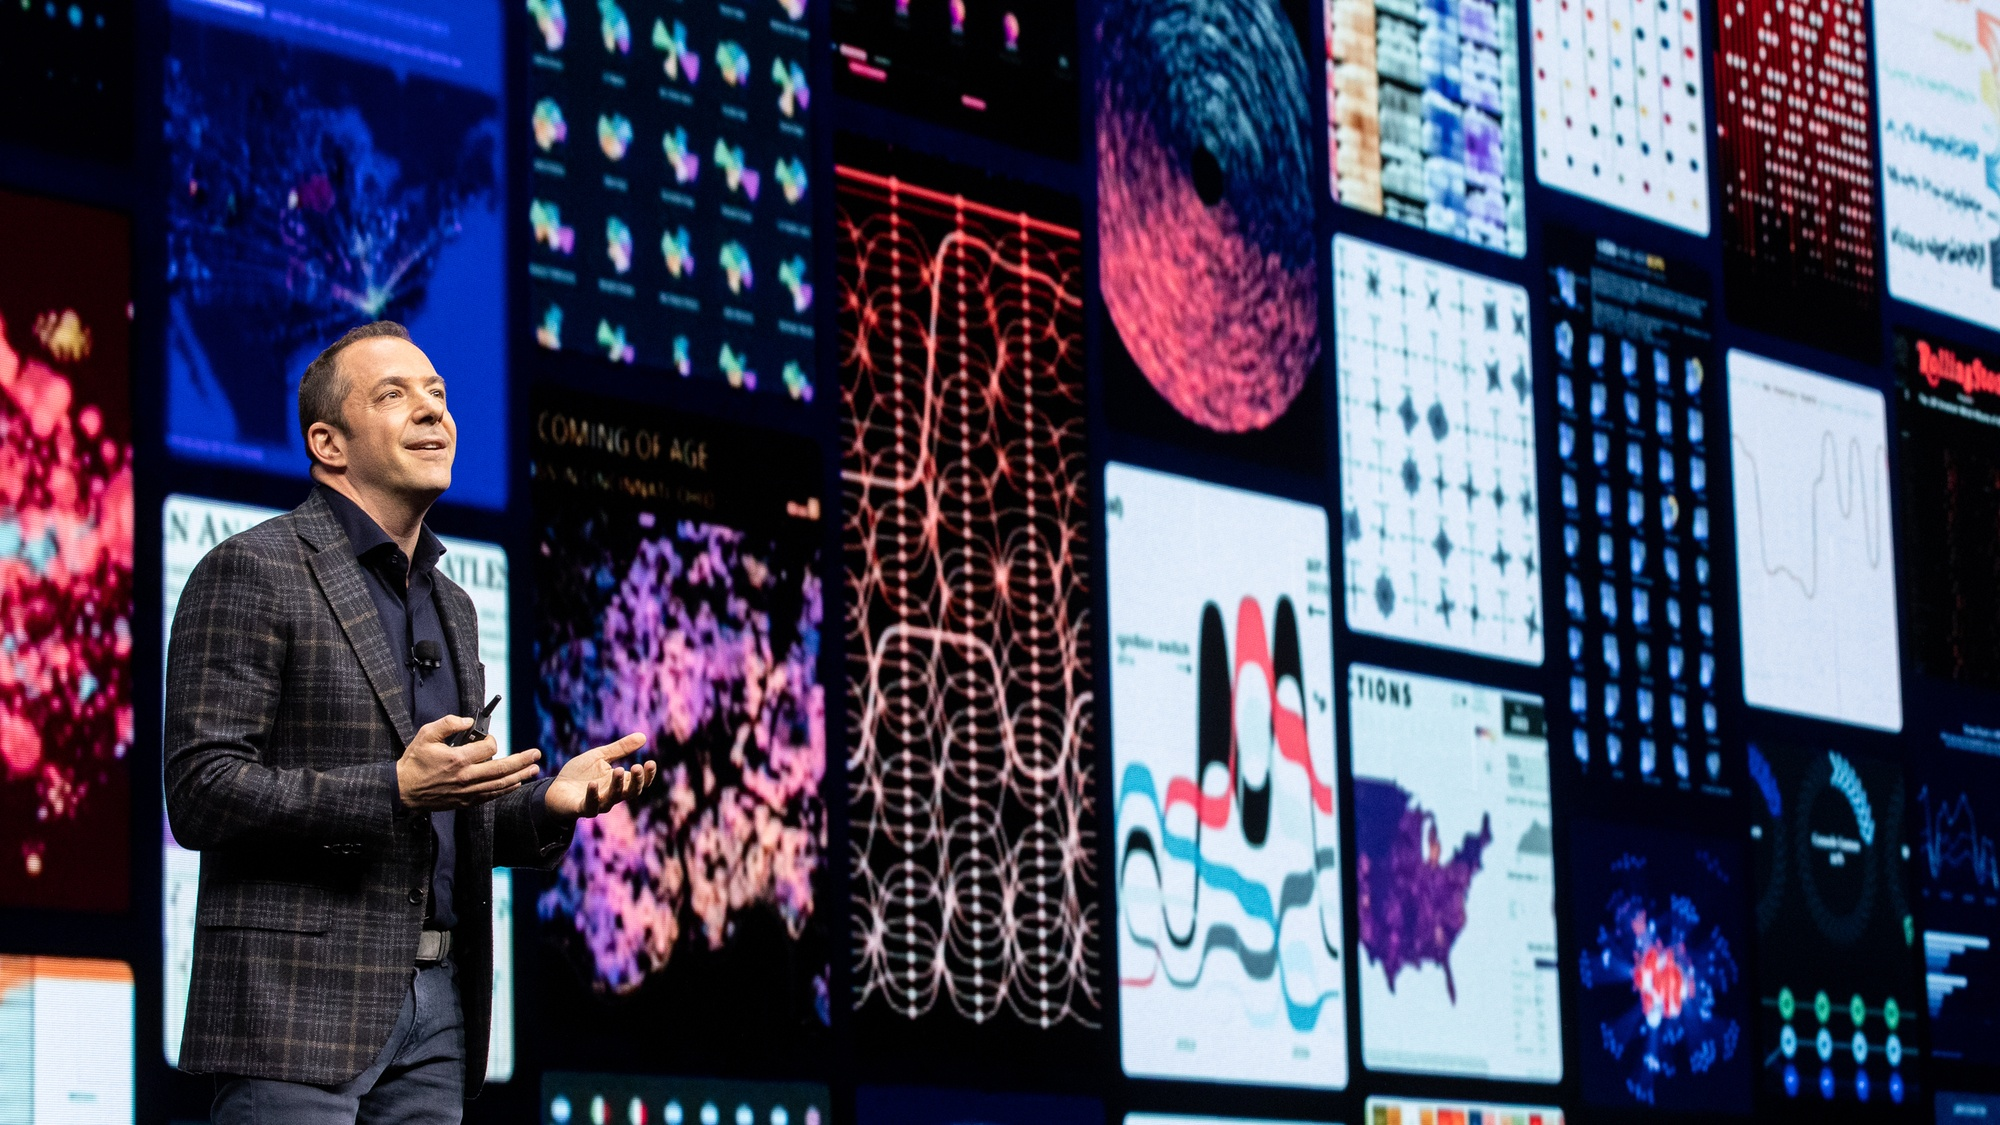 Francois Ajenstat discusses advancements to the Tableau platform on stage at TC19